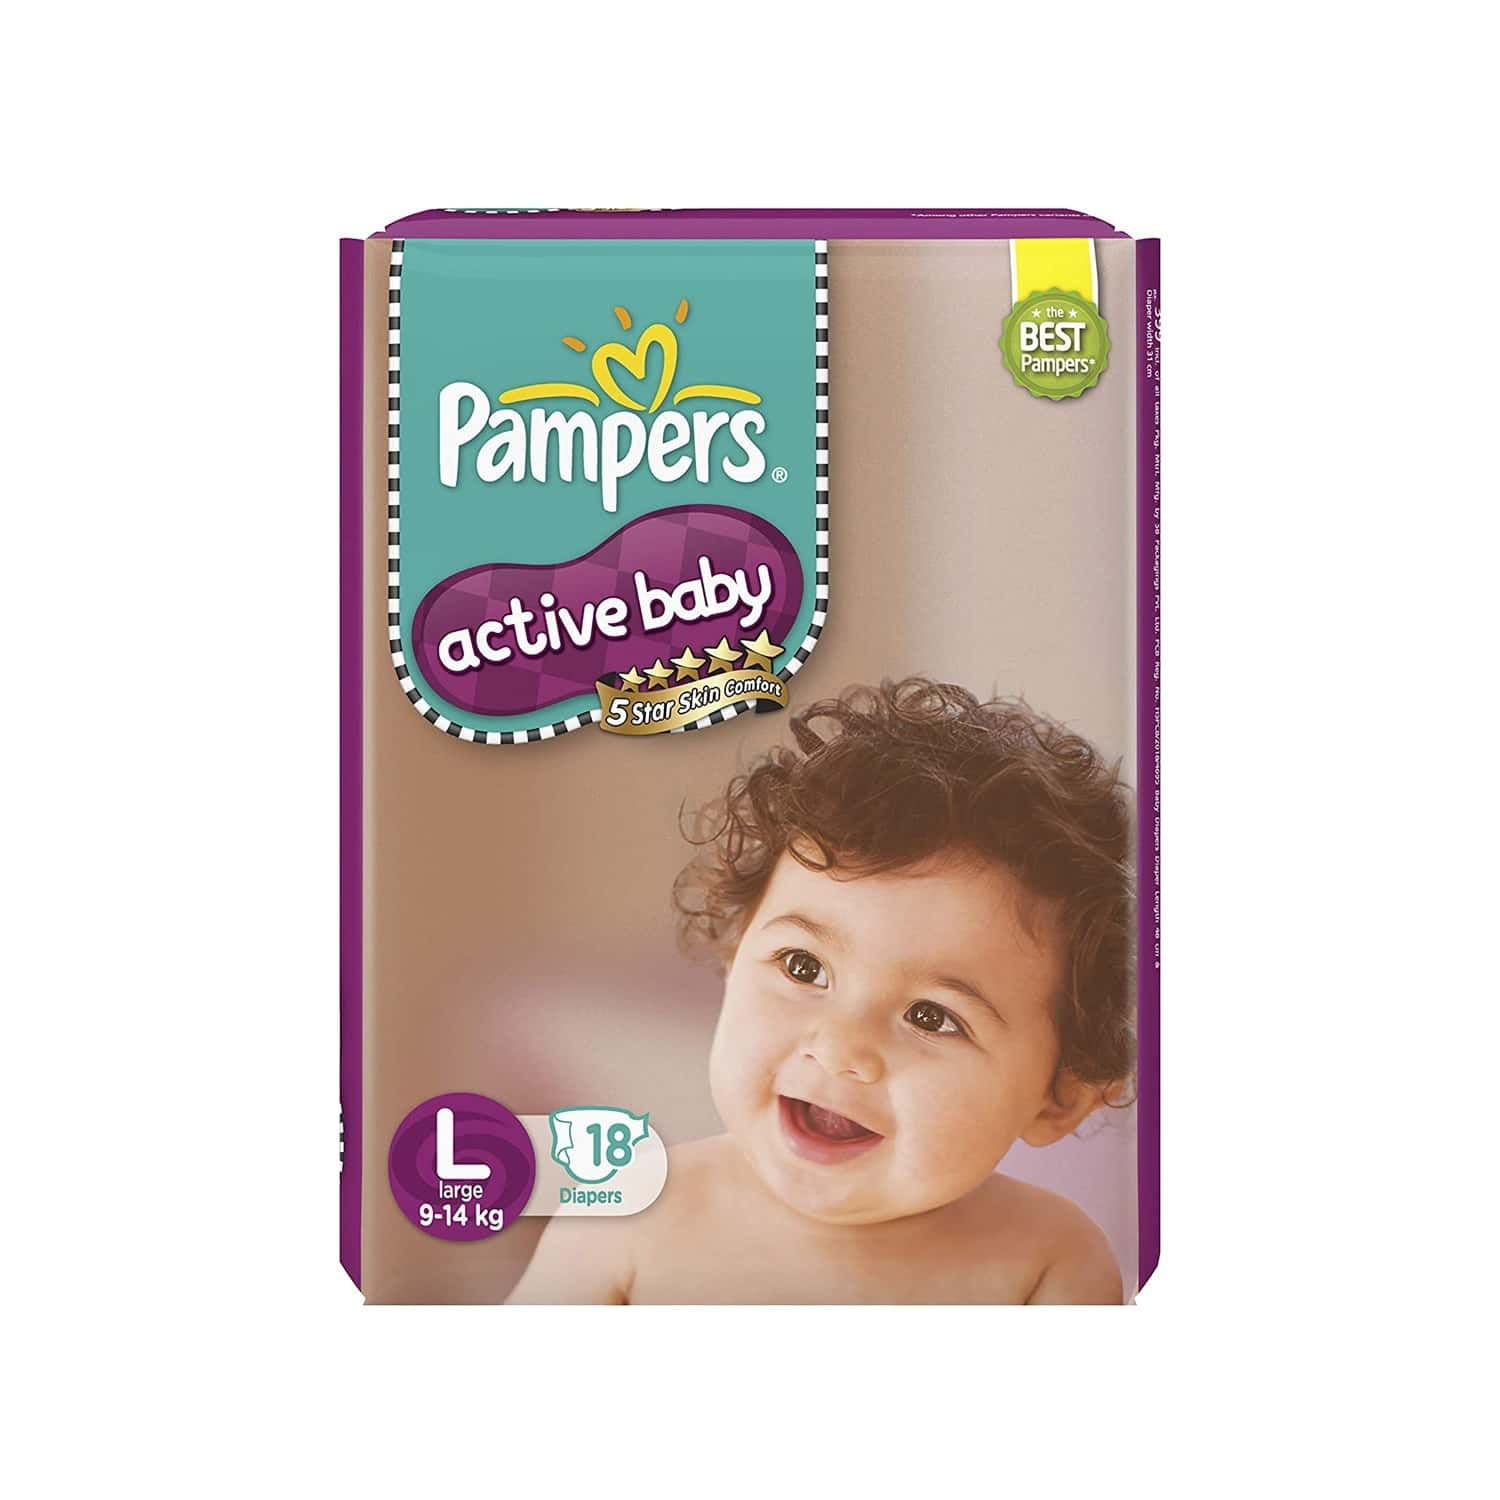 Pampers Diaper Packet Of 18 Large Size